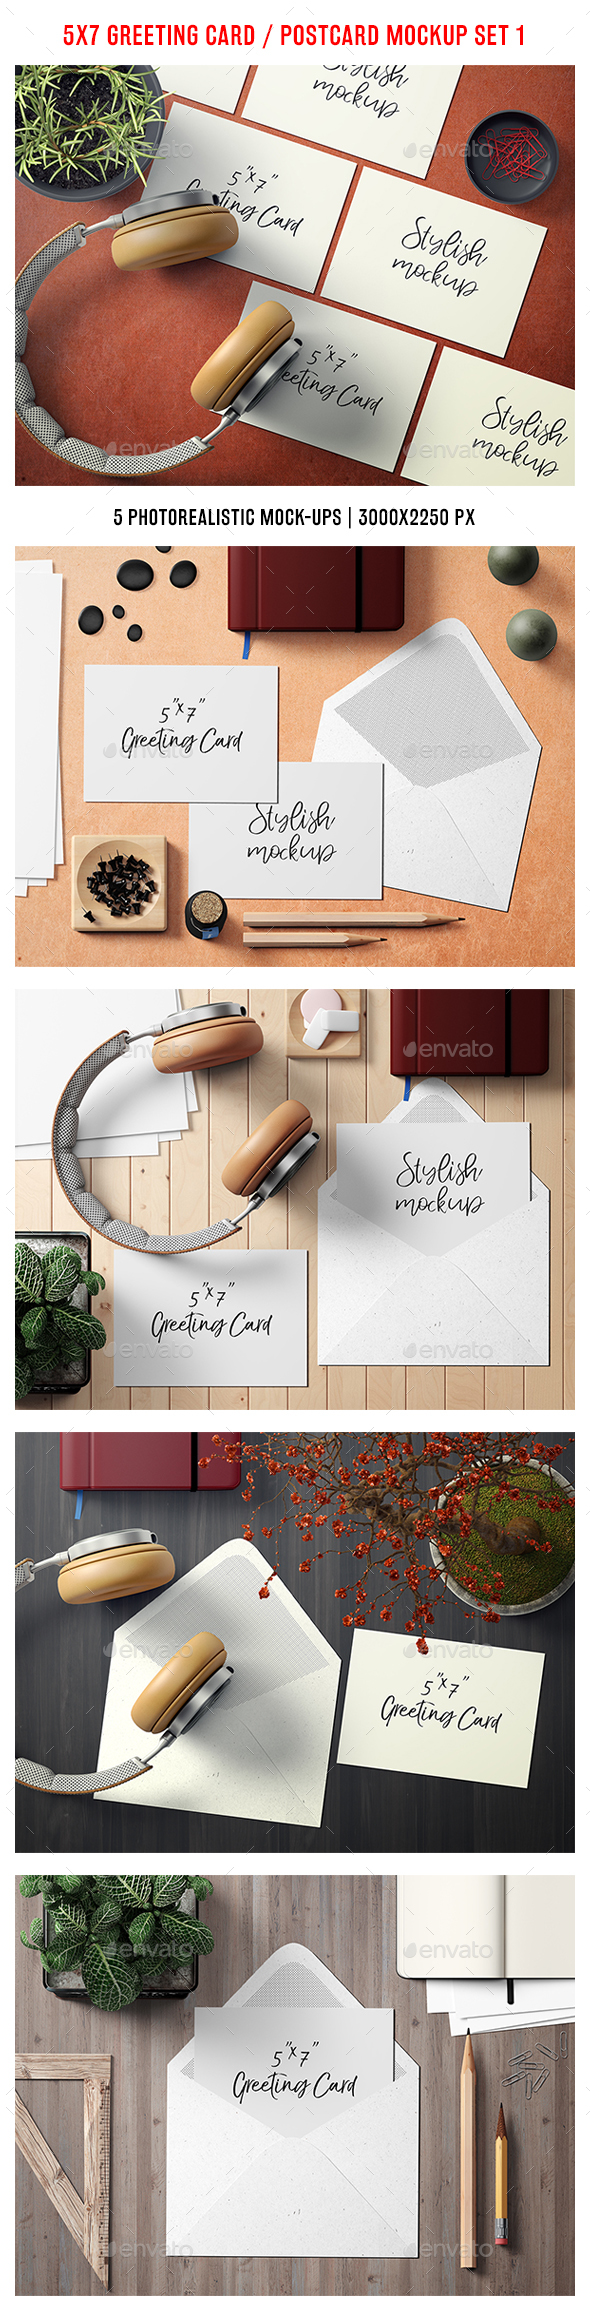 5x7 Greeting Card / Postcard Mockup Set 1 - Stationery Print